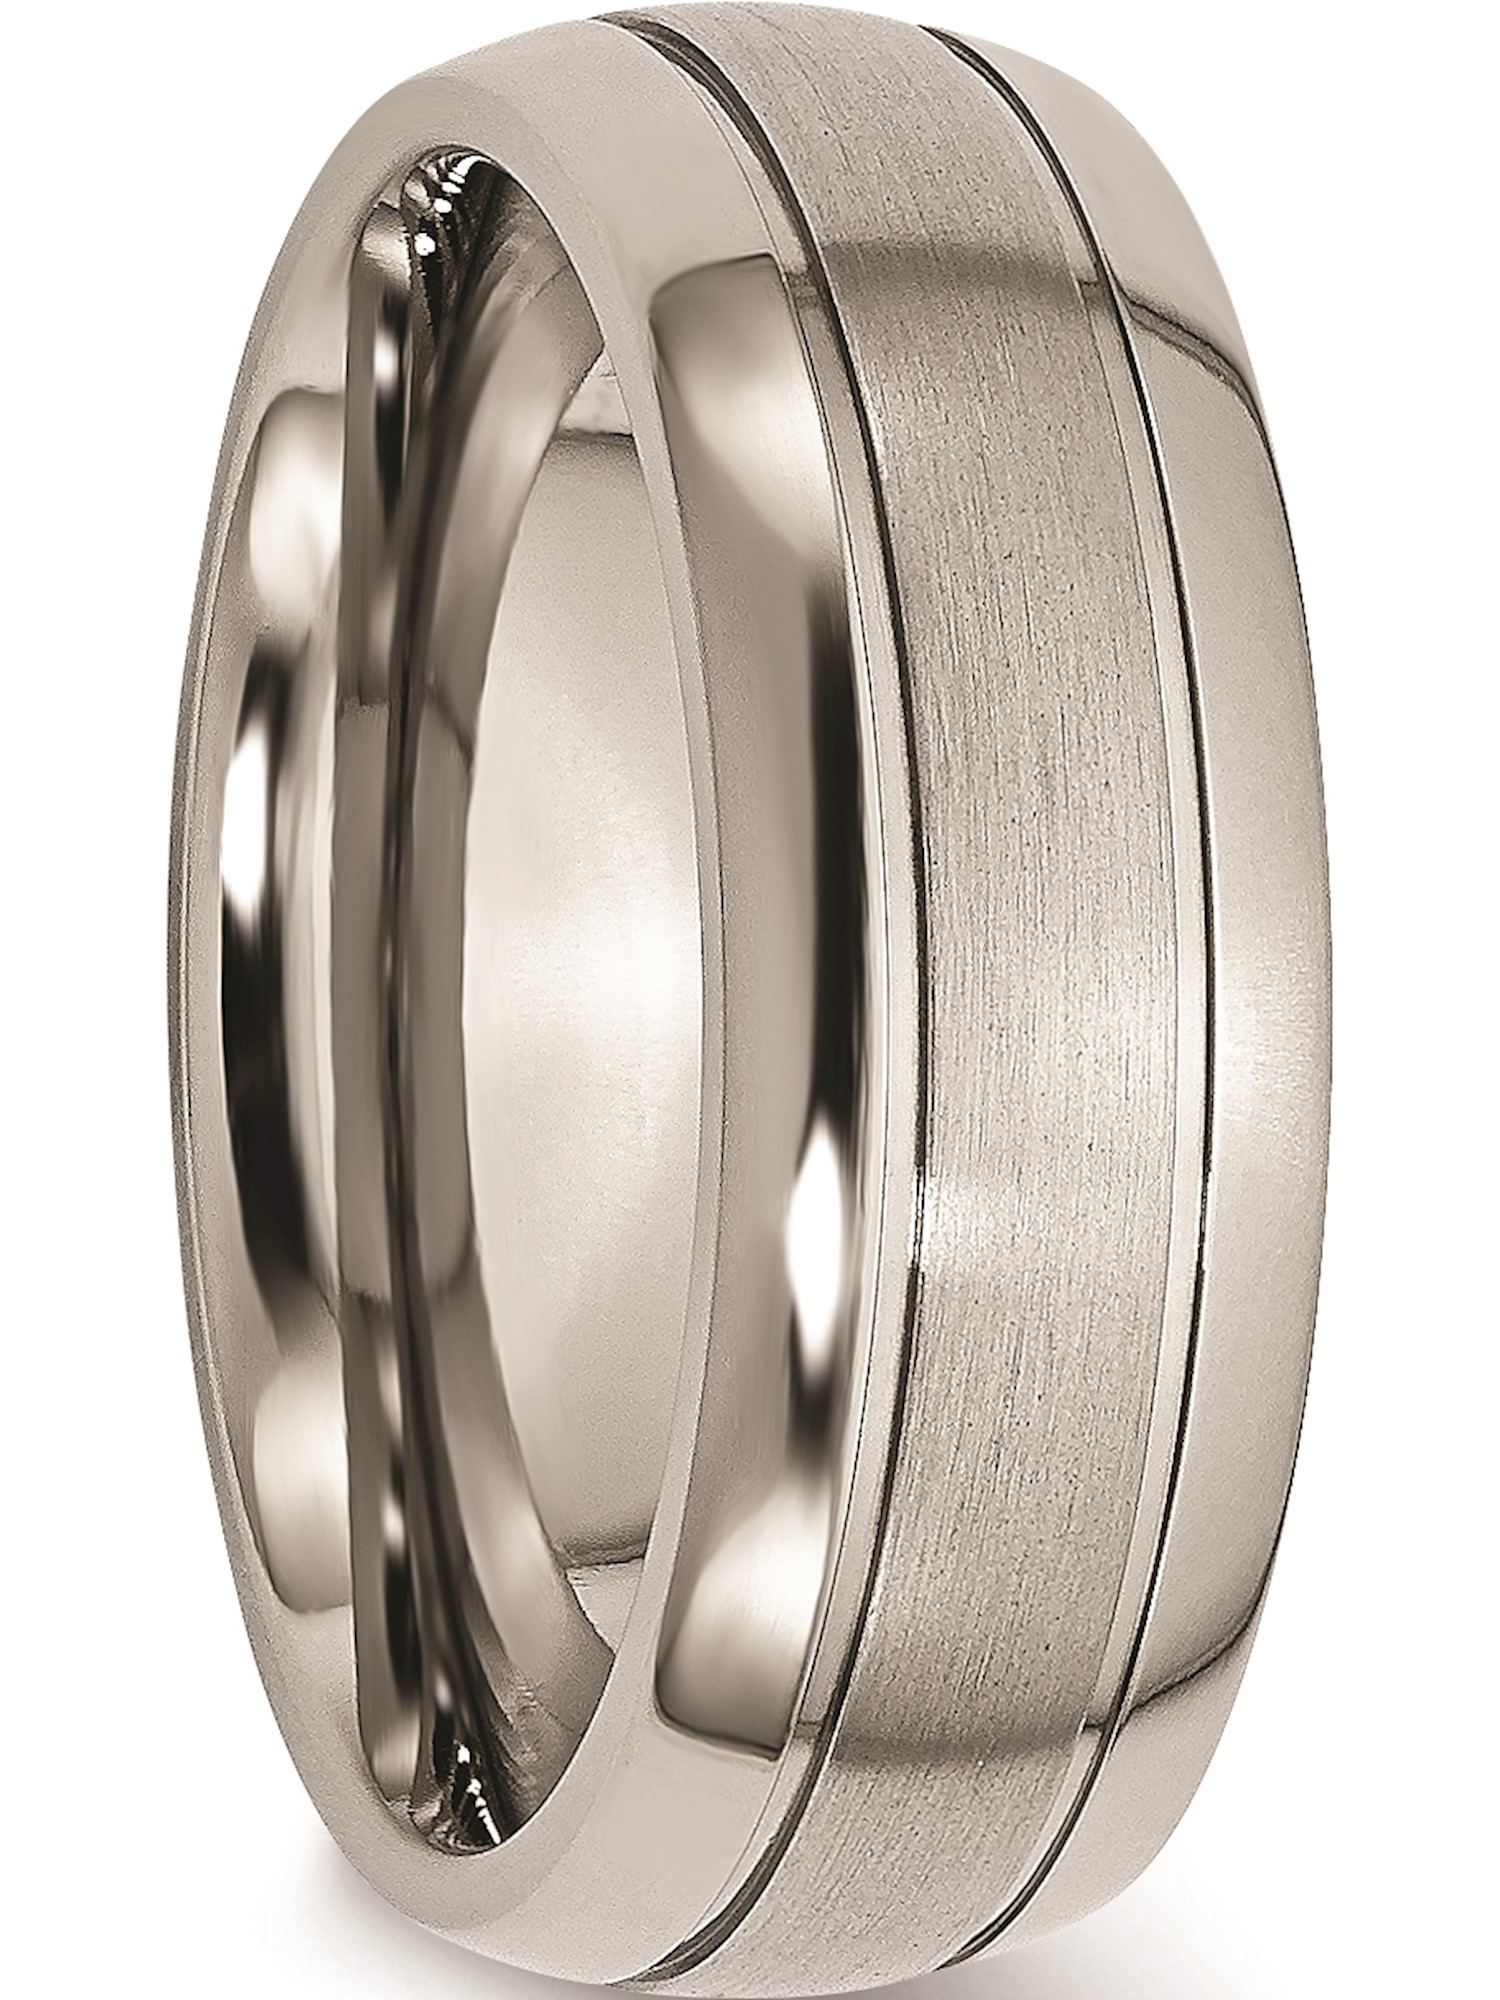 Bridal Titanium Grooved 8mm Polished Band